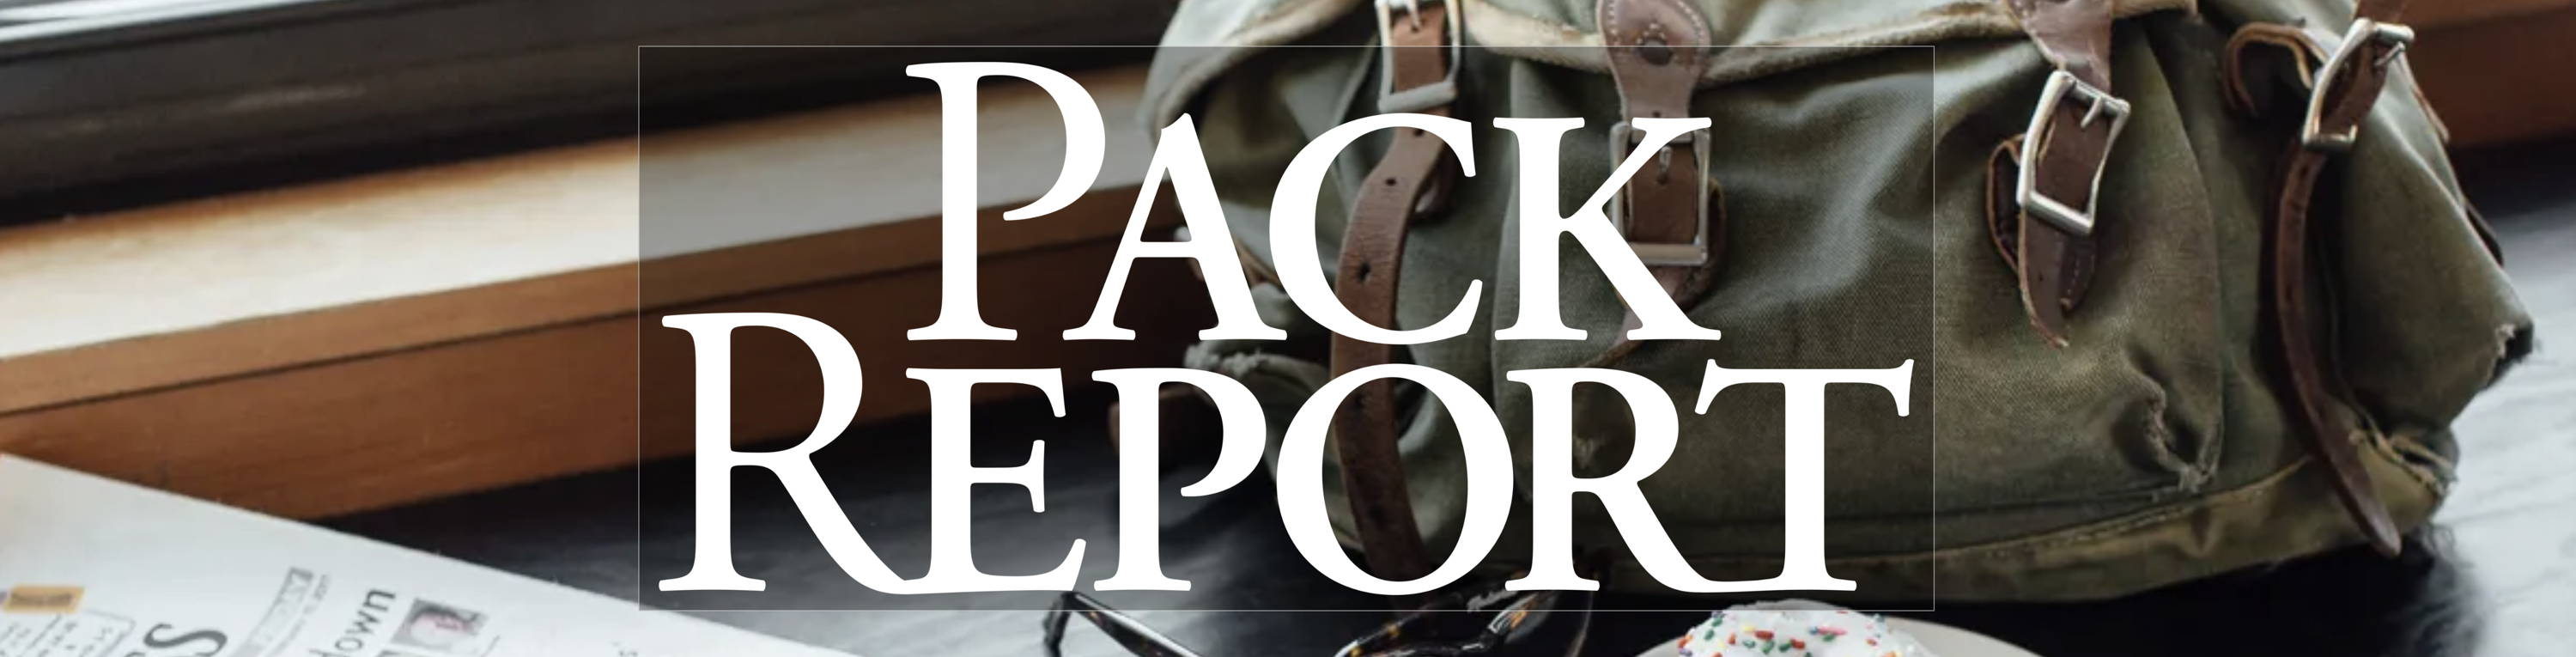 the pack report blog from duluth pack